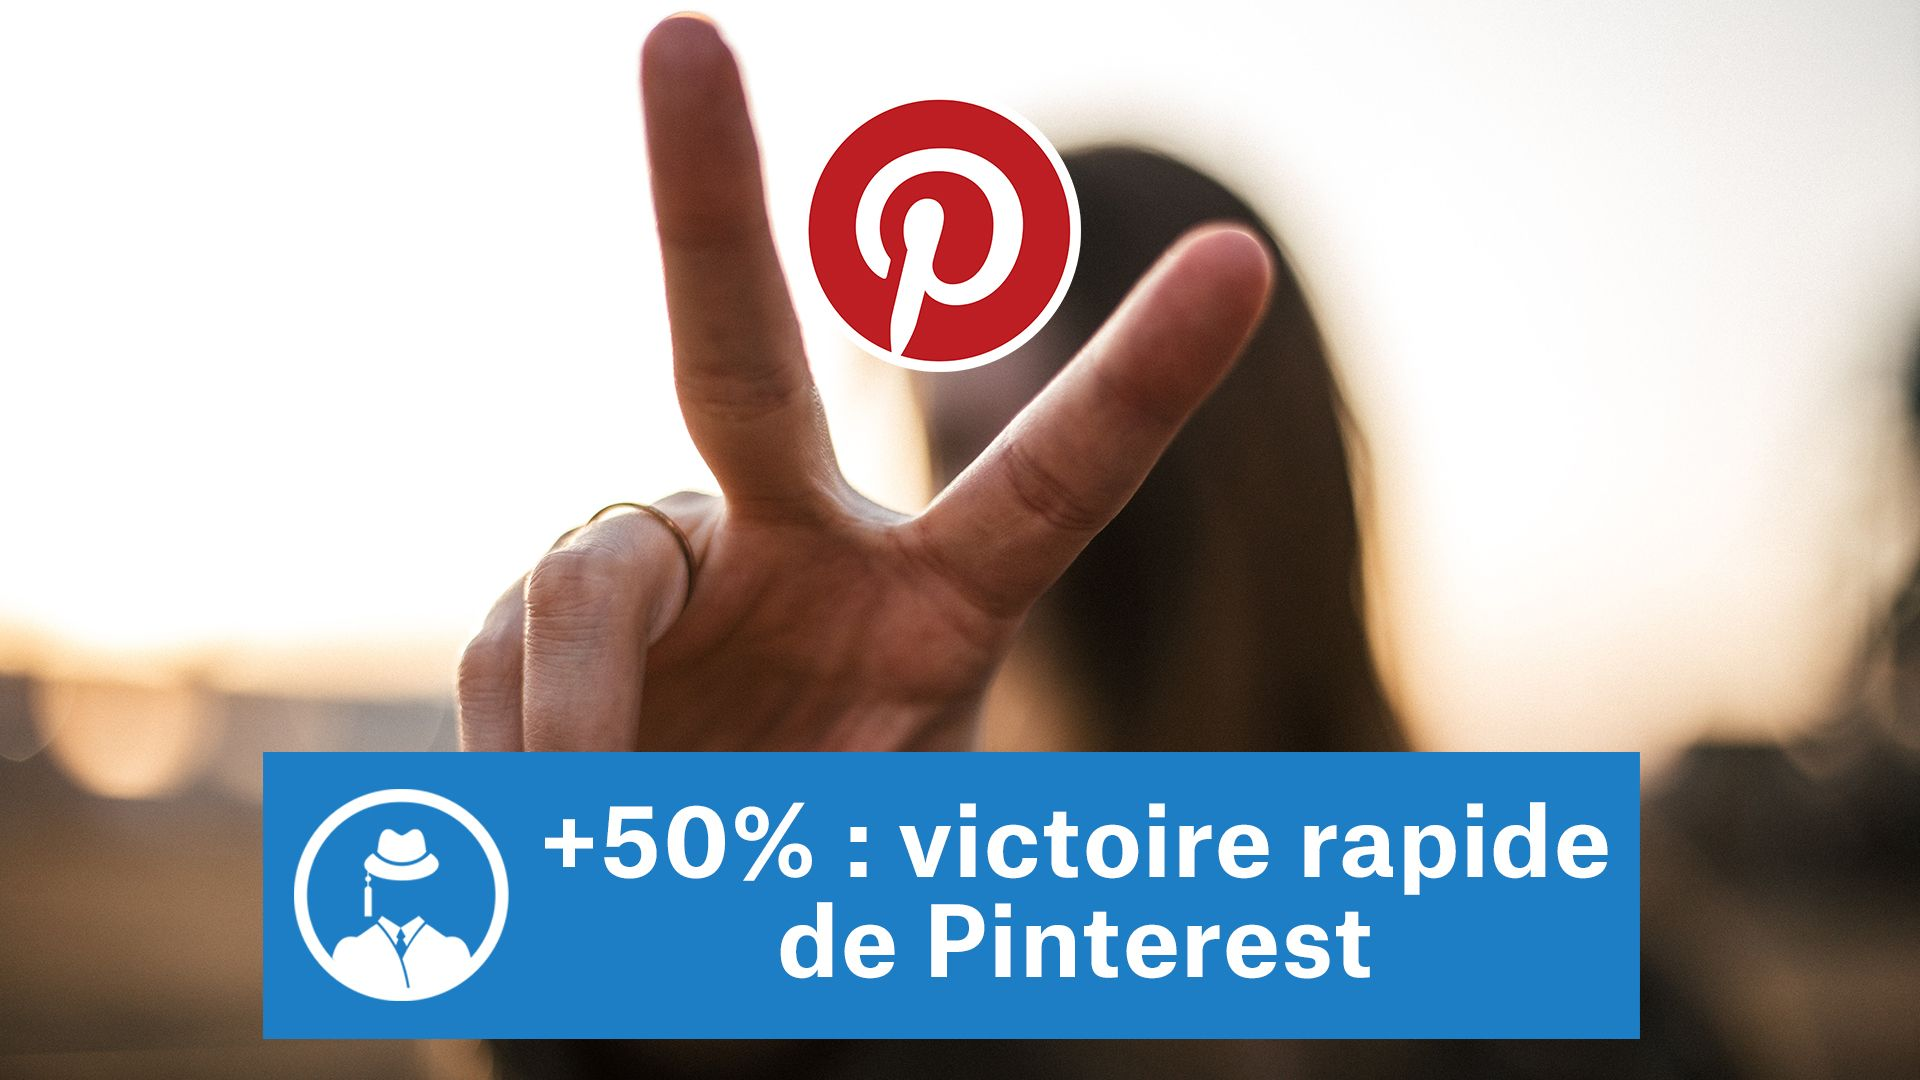 +50% : victoire rapide de Pinterest #GrowthHacking #WebMarketing #FormationGrowthHacking #CentreDeFormationFrance #TunnelAARRR #AARRR #SocialMedia #CommunityManagement #SEO #MarketingDigital #SiteWeb #Pinterest